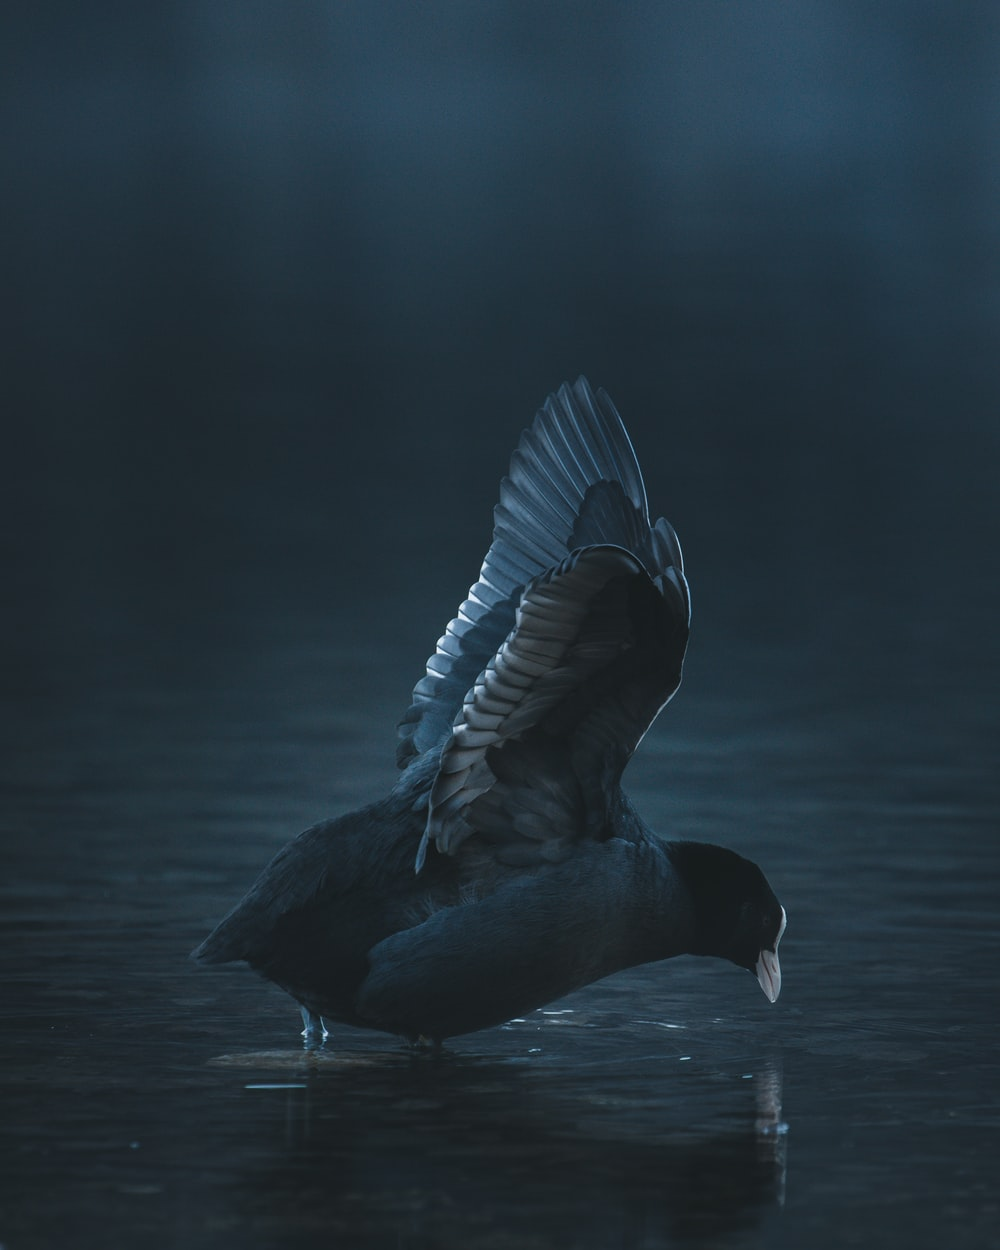 black and white bird flying over body of water